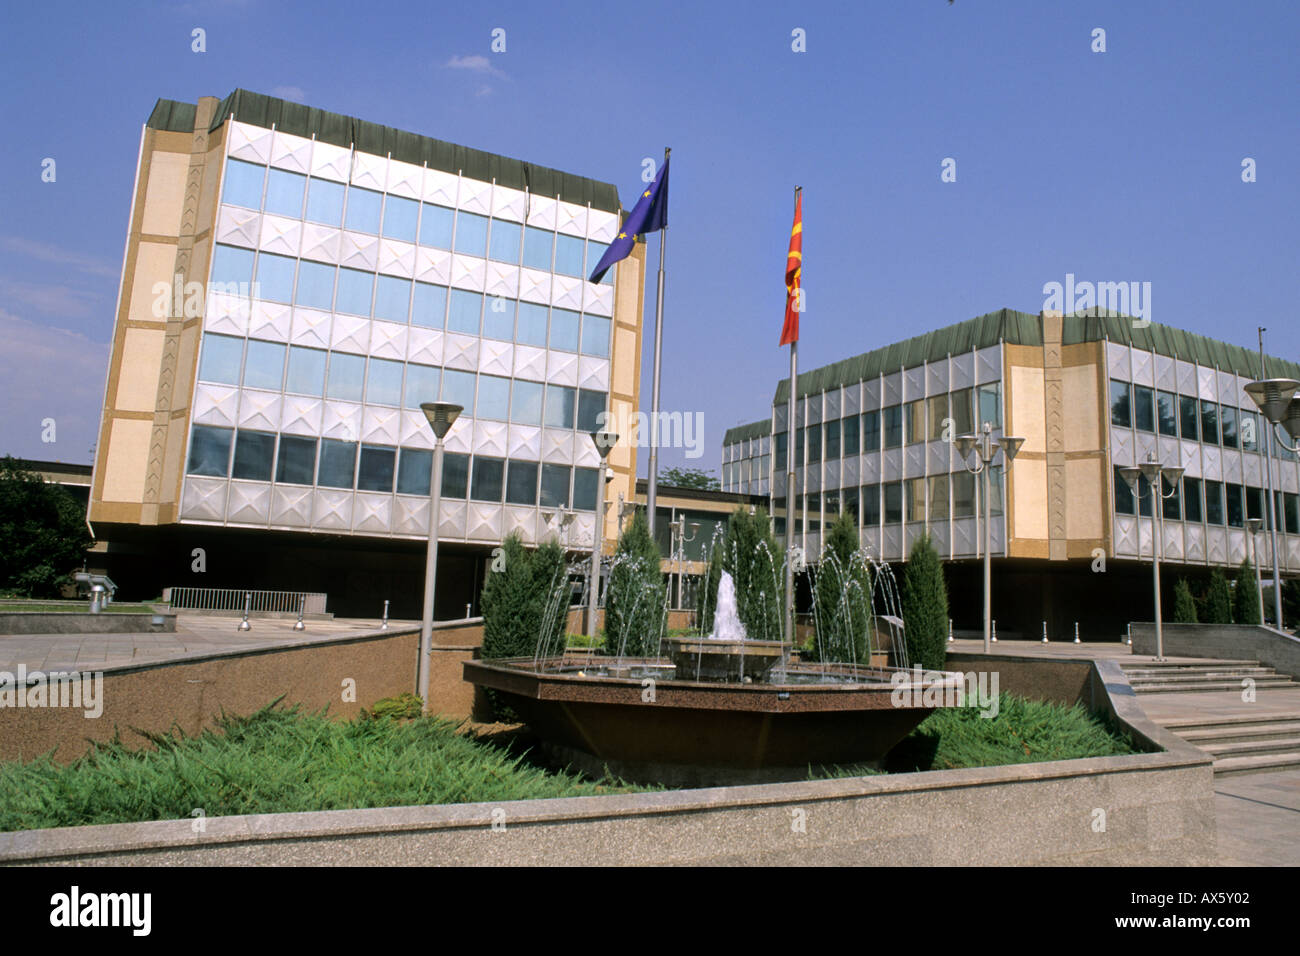 Government buildings in the modern capital of Skopje Macedonia - Stock Image